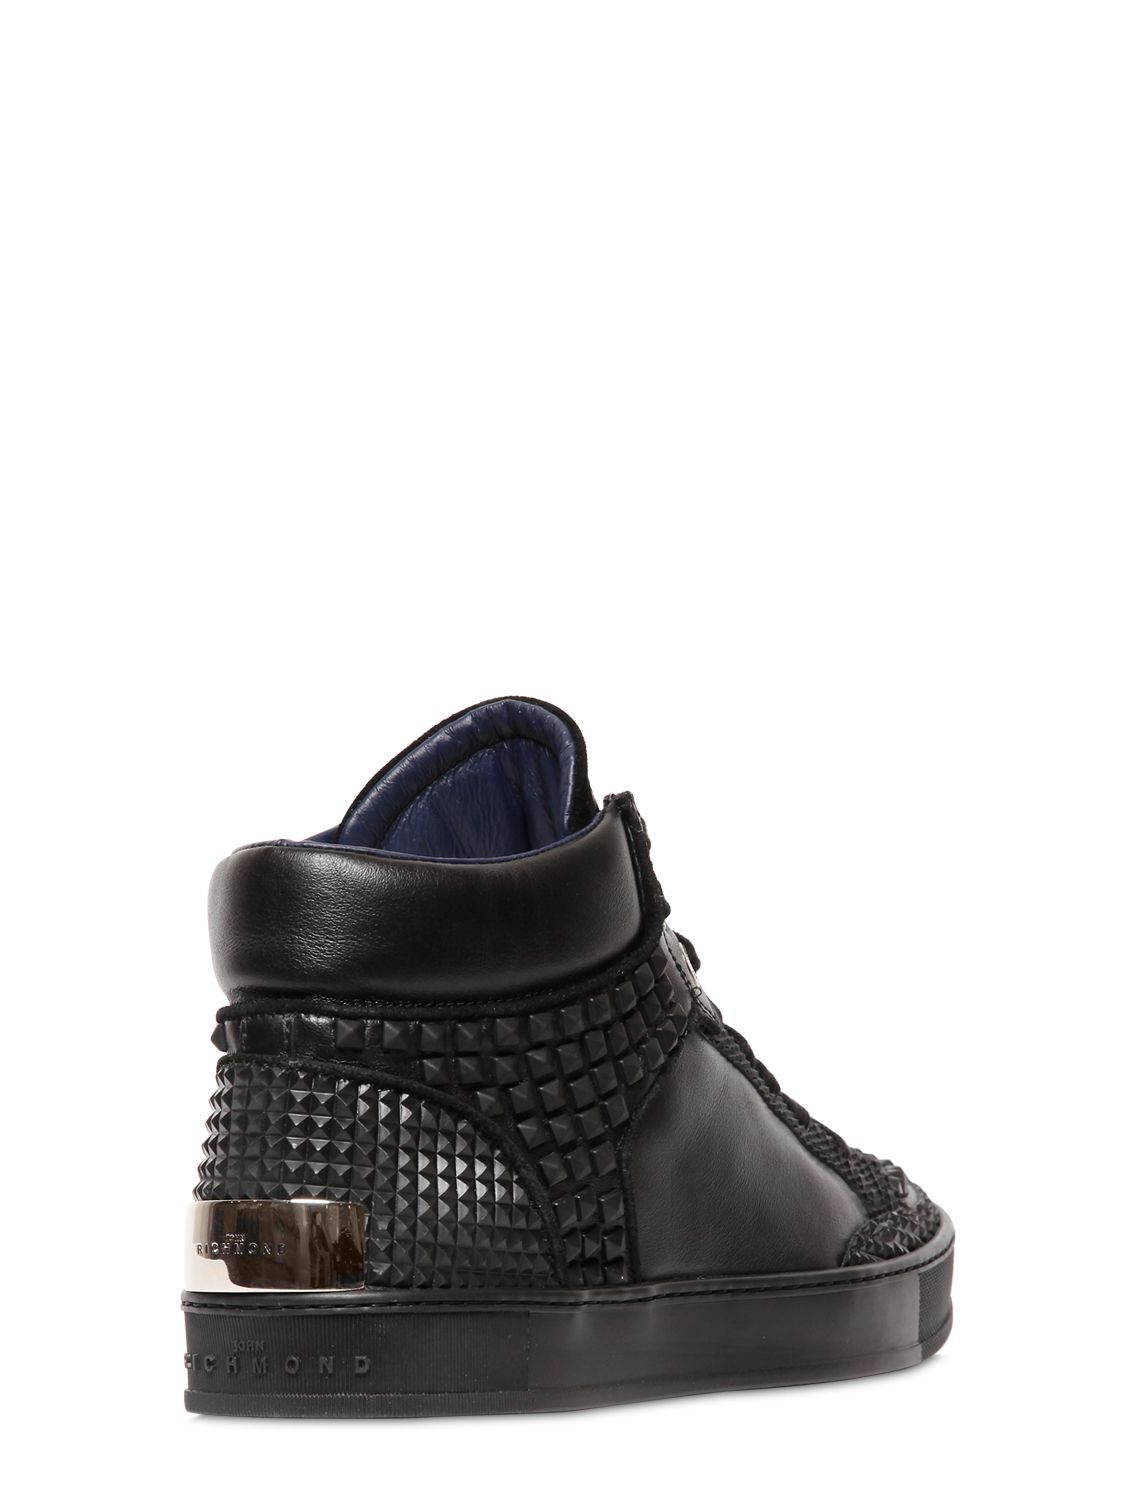 John Richmond High-tops Et Chaussures De Sport A0qqBcRel8